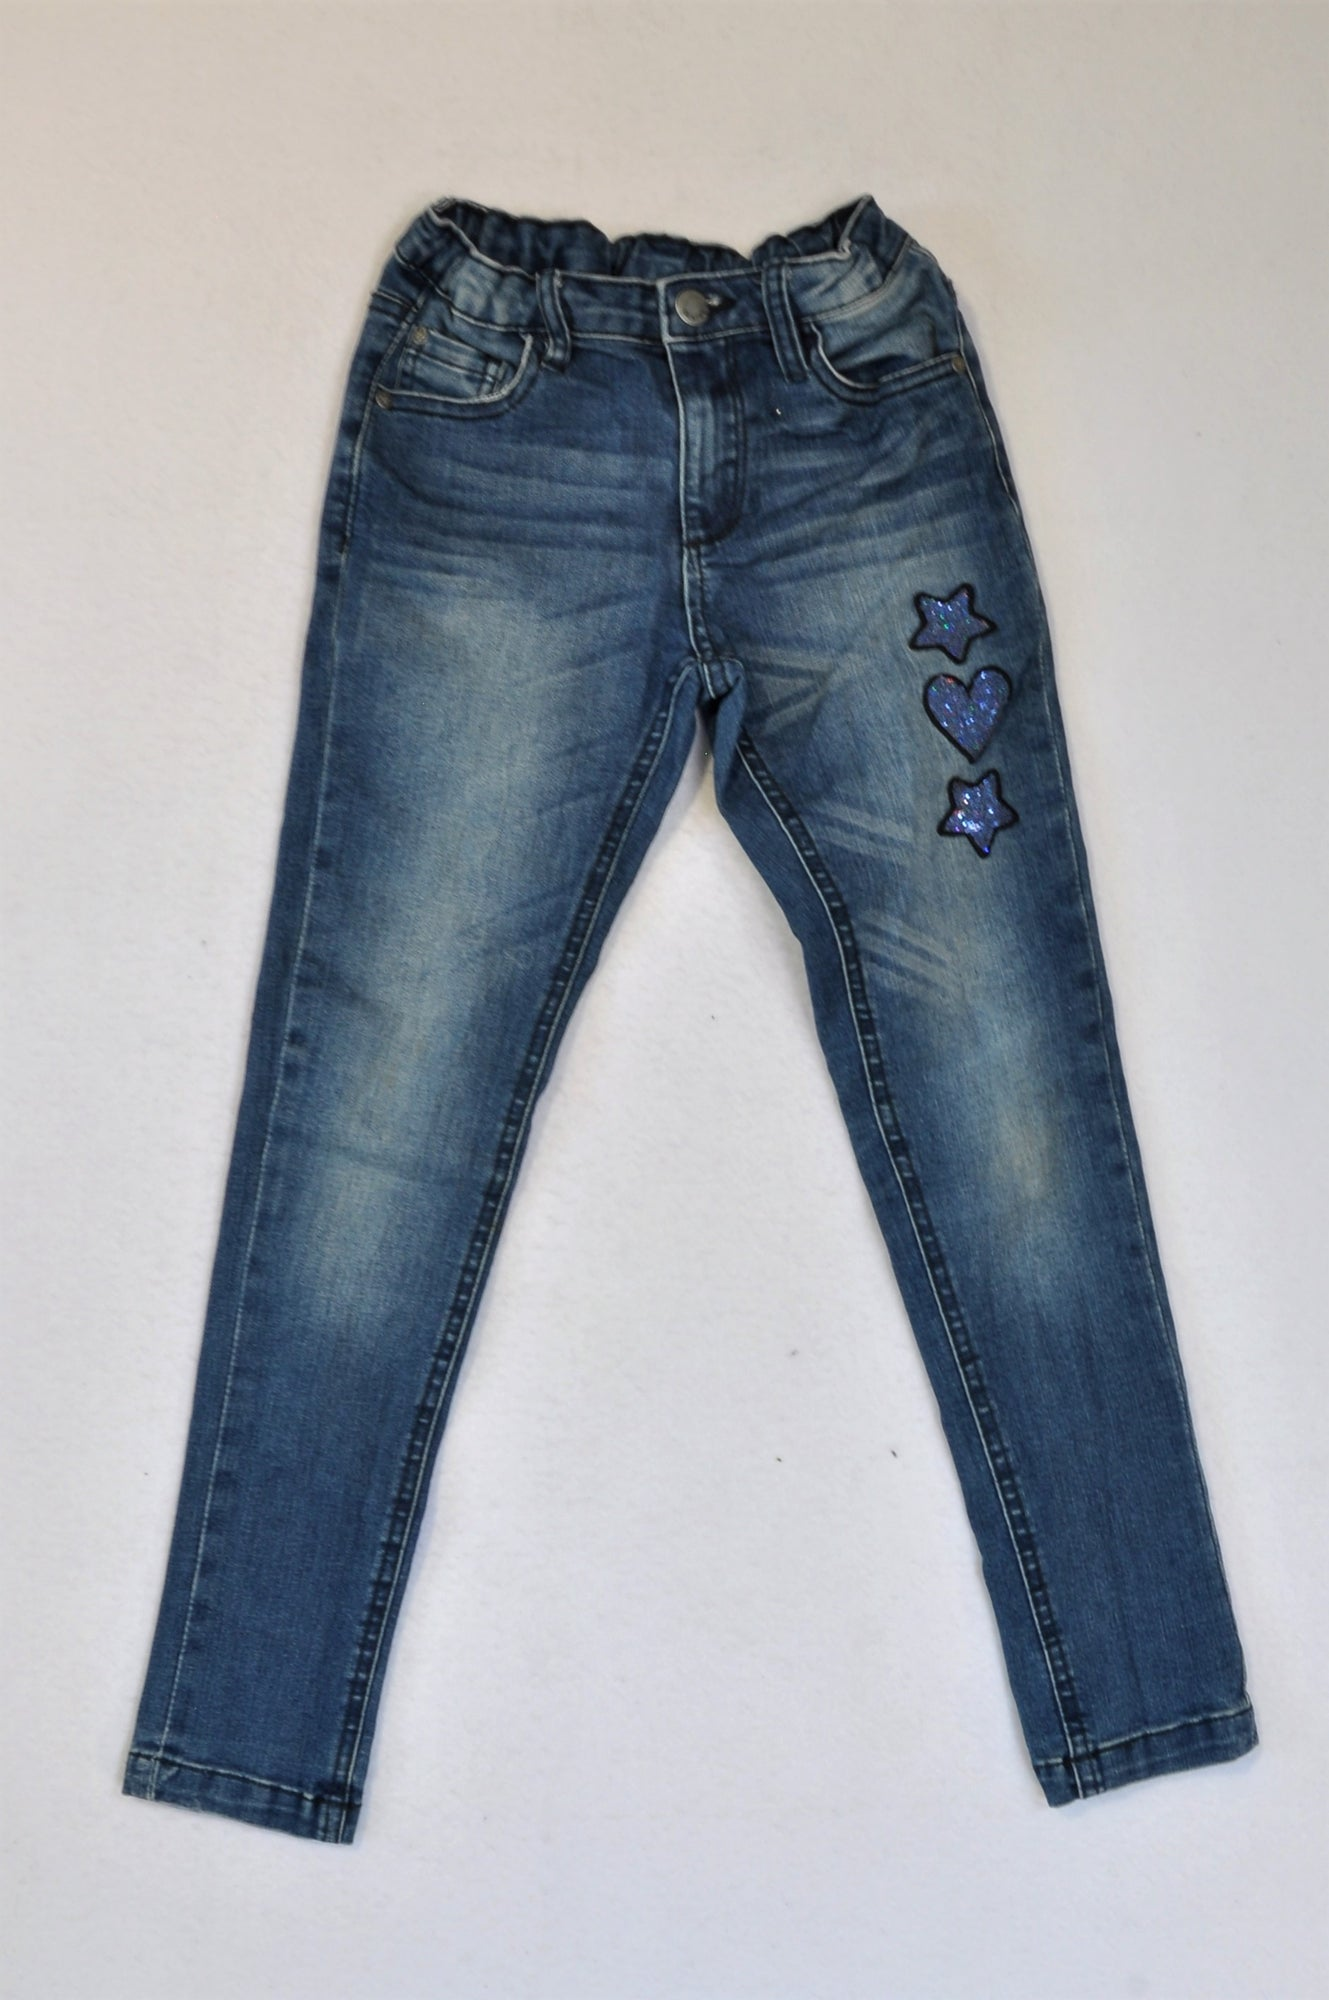 Woolworths Medium Wash Star Sequin Jeans Girls 7-8 years